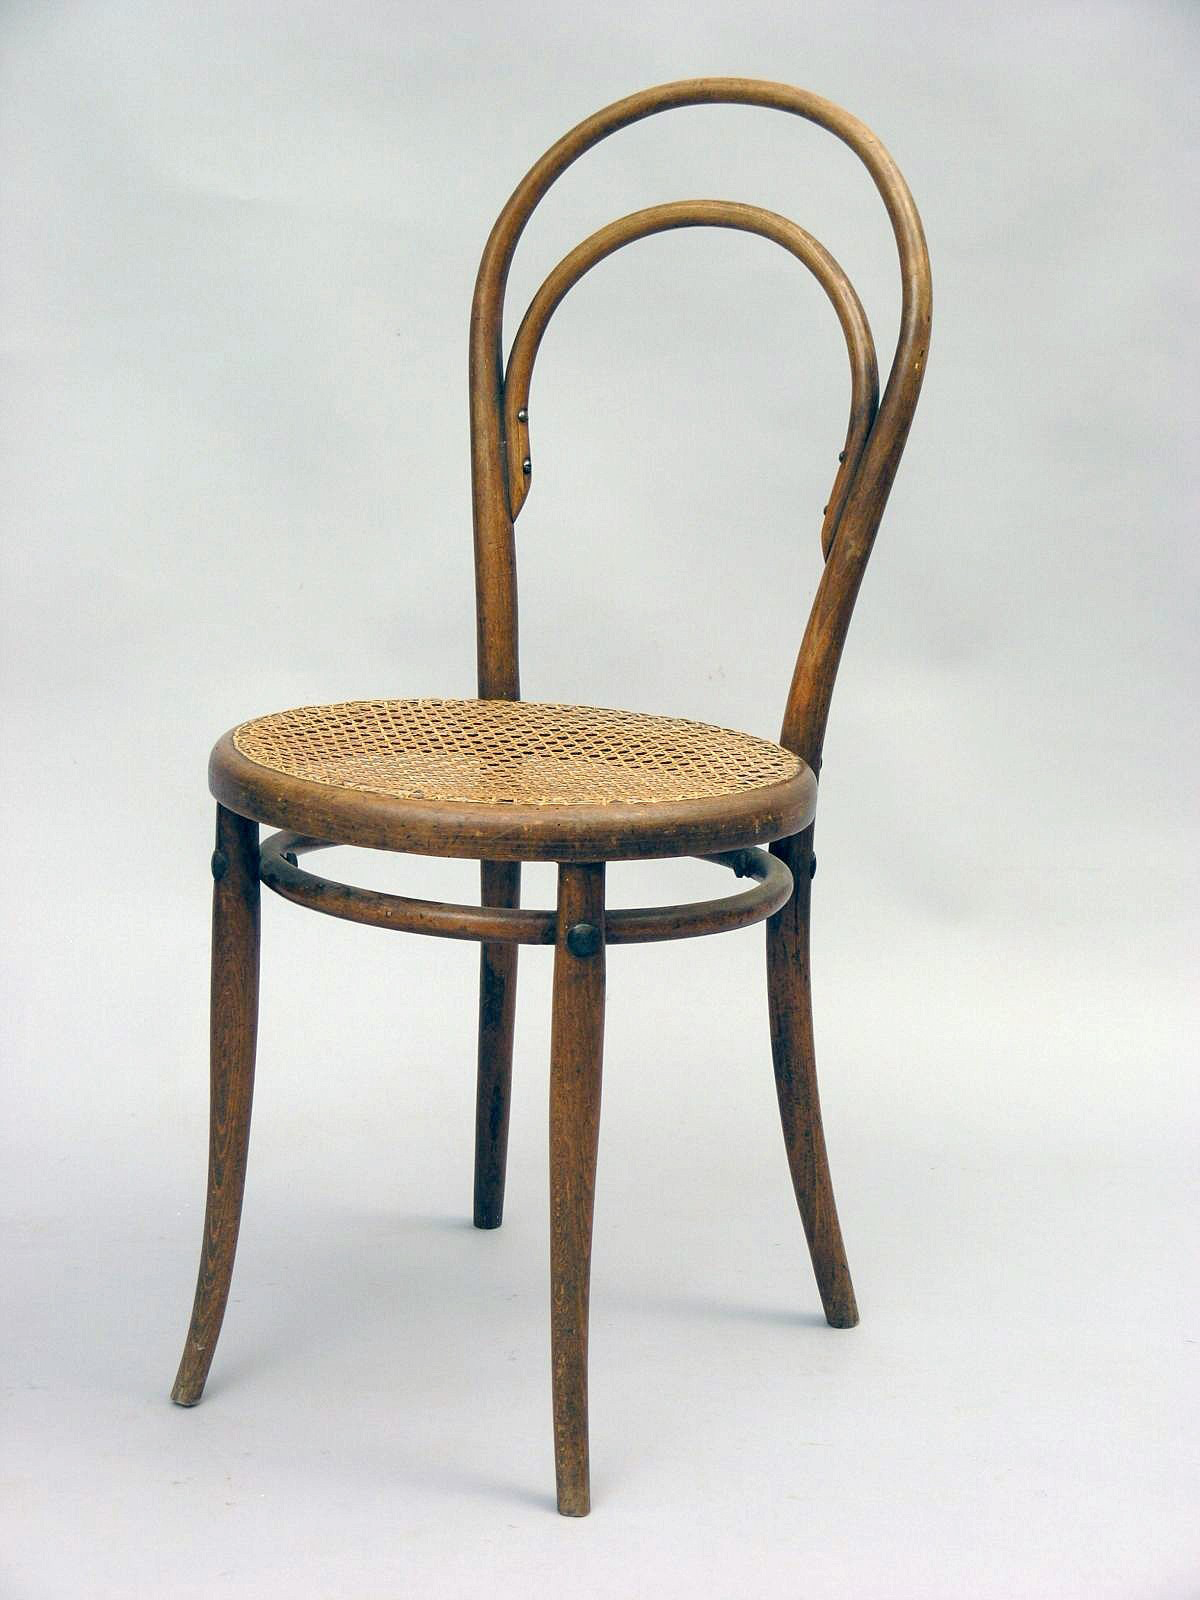 famous wooden chairs the quot chair of chairs quot why this 1859 chair is so 15213 | thonet